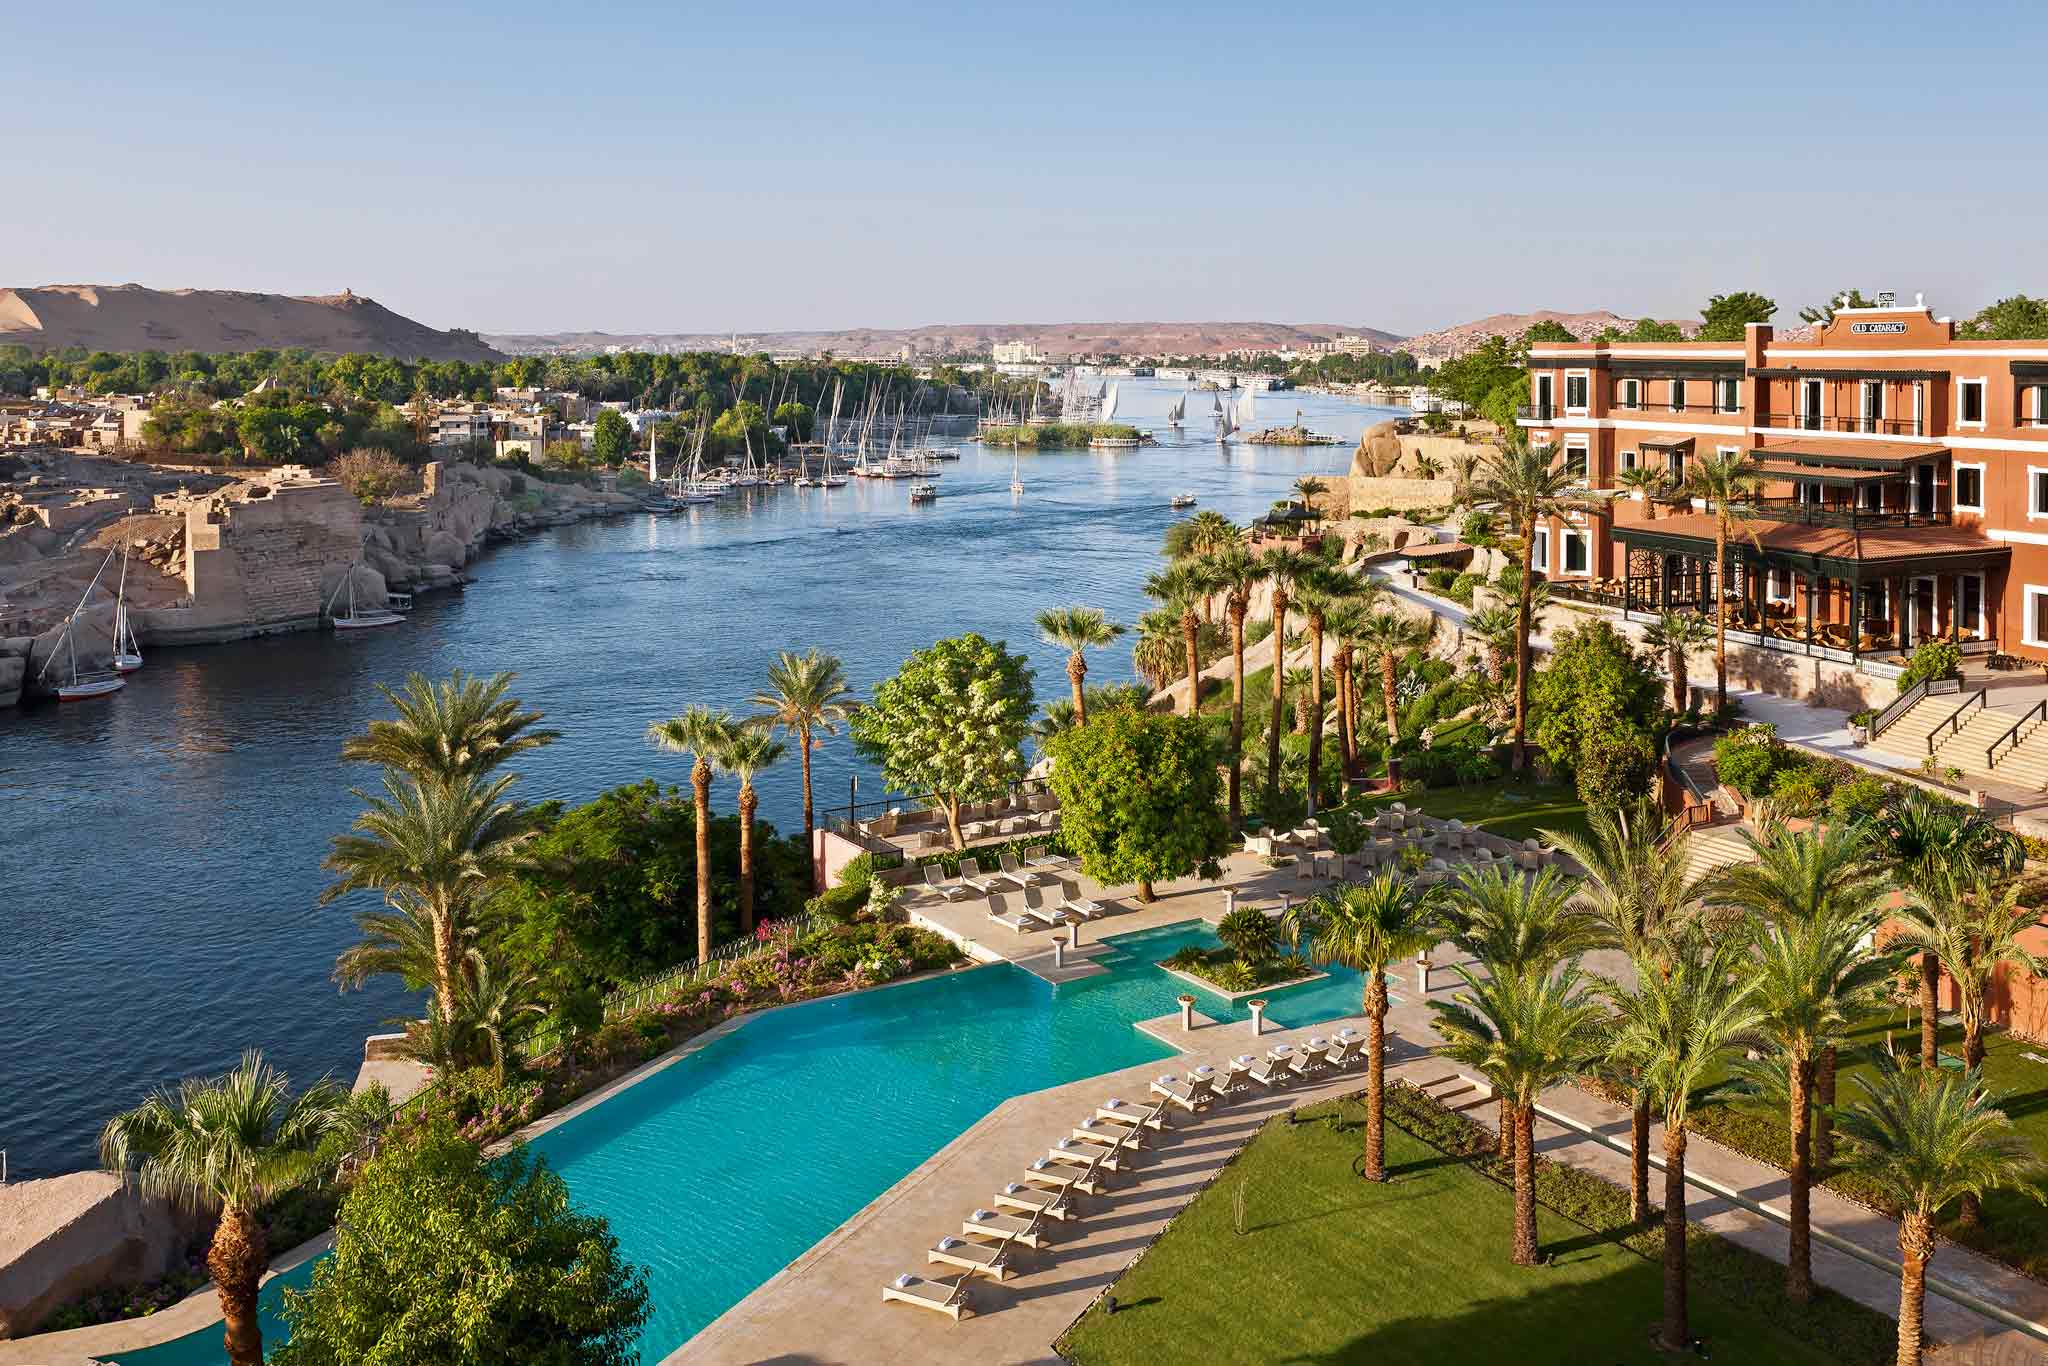 nile-view-from-old-cataract-hotel